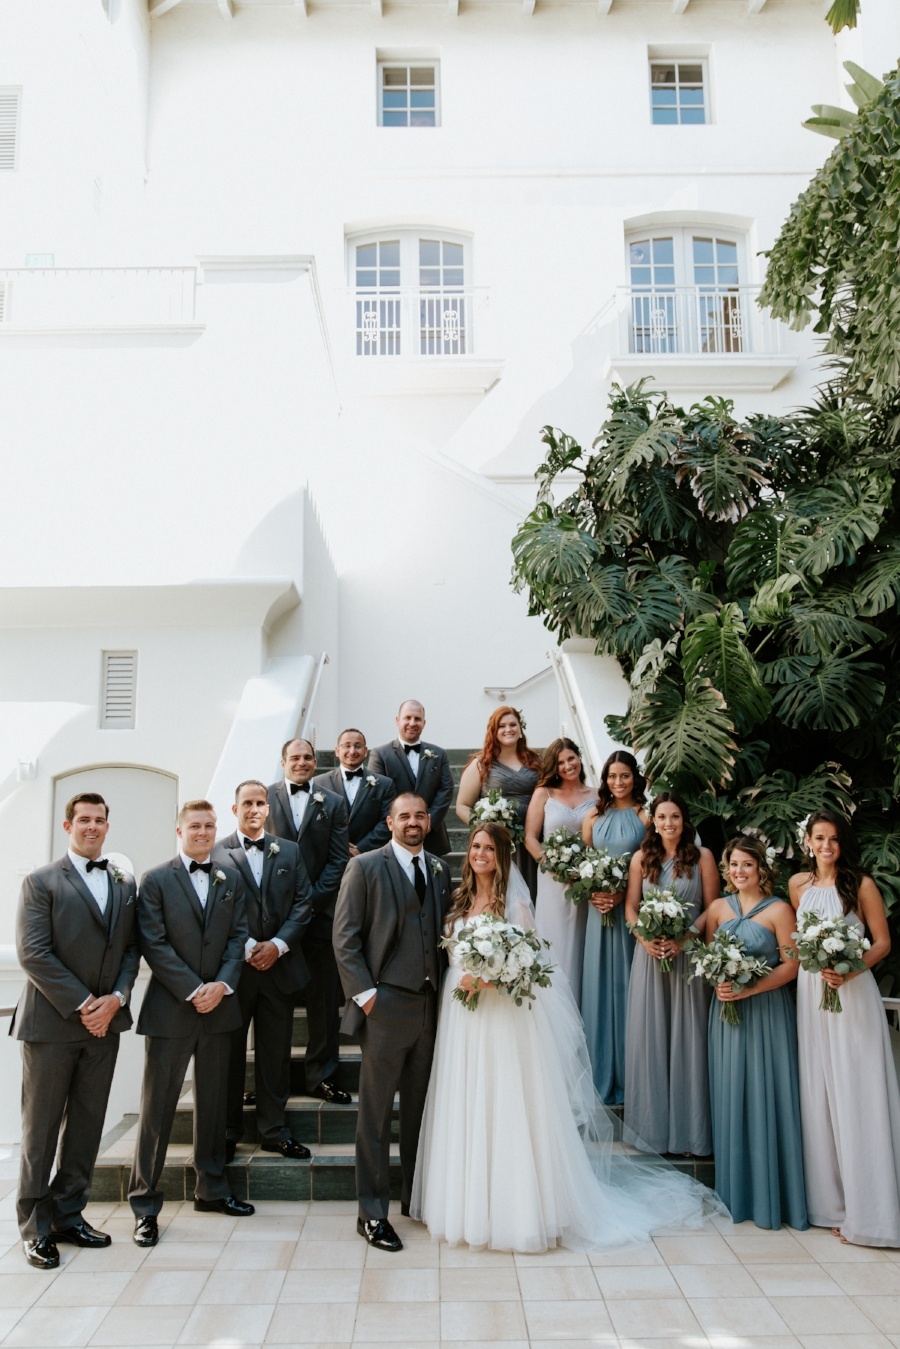 Elegant Coastal Boho Wedding | Park Hyatt Aviara | San Diego Wedding | Tiana Loyd-Michelle Garibay Events | Paige Nelson Photography